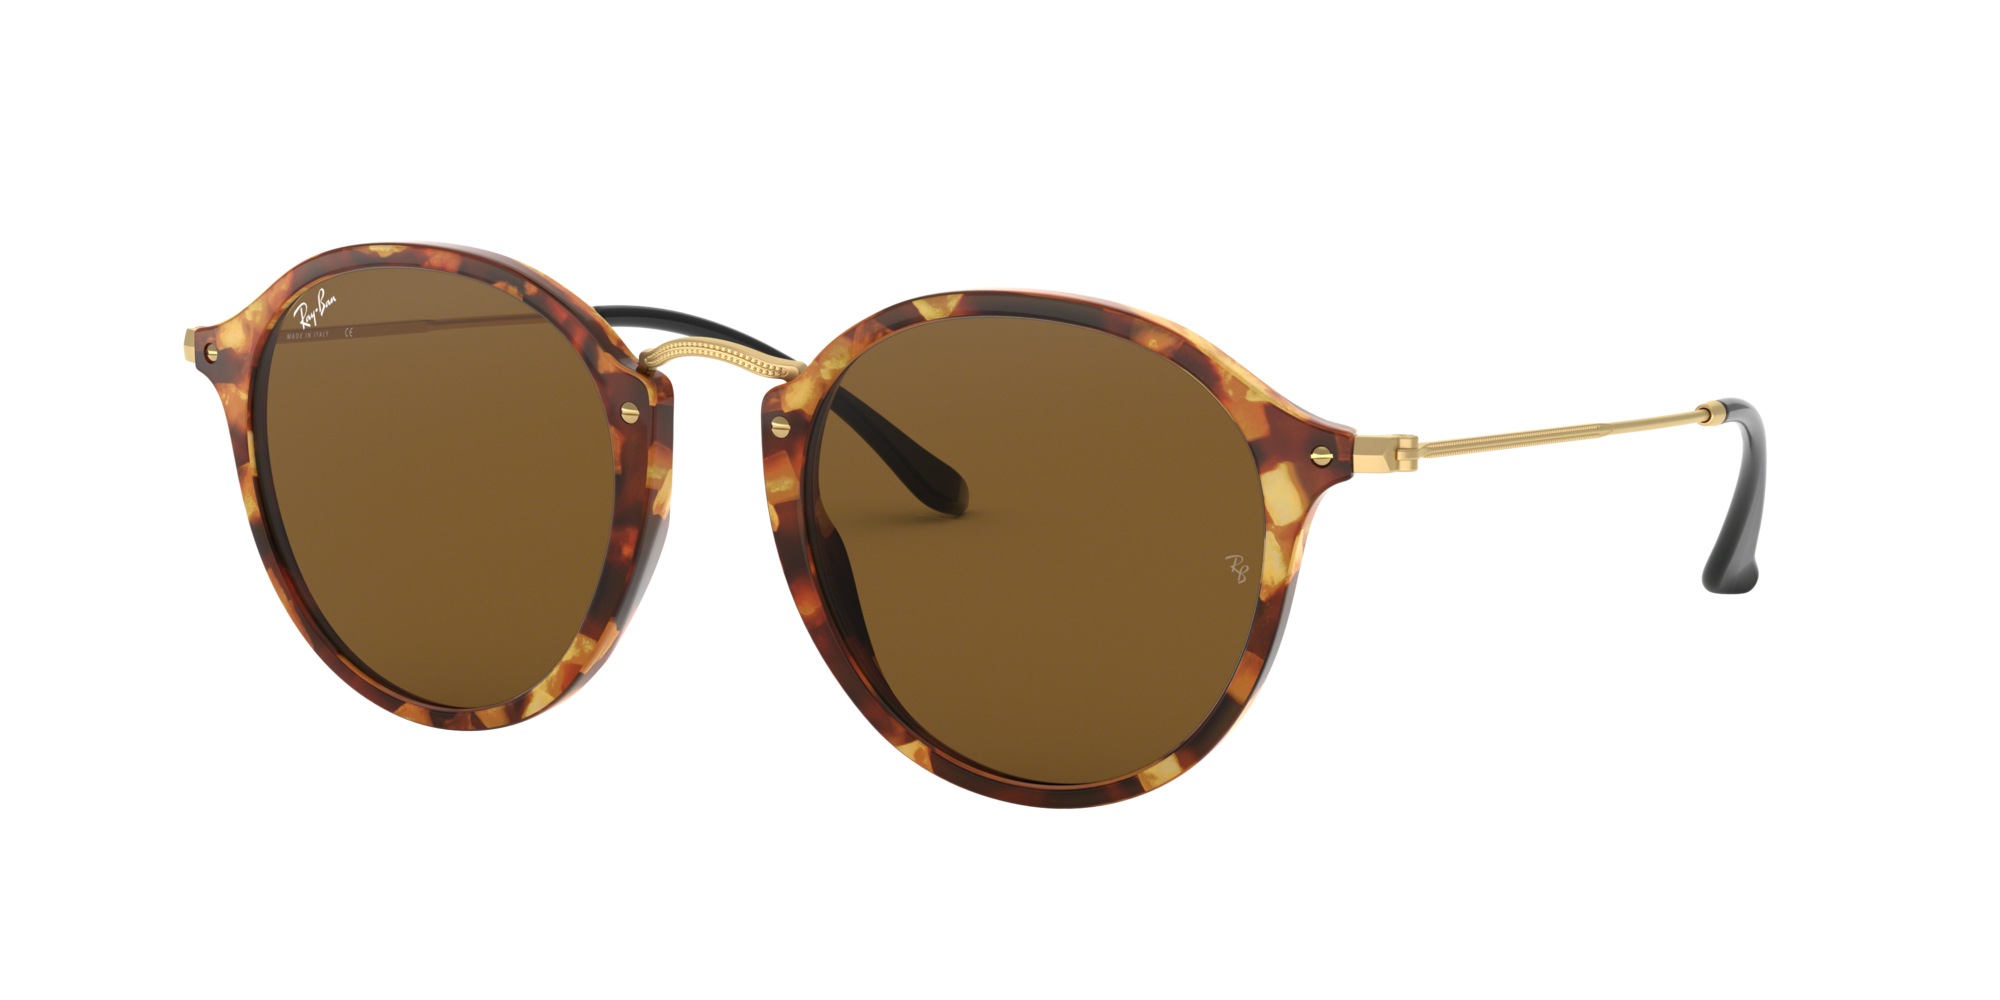 Ray Ban Unisex  RB2447 ROUND FLECK -  Frame color: Habana, Lens color: Marron, Size 52-21/145